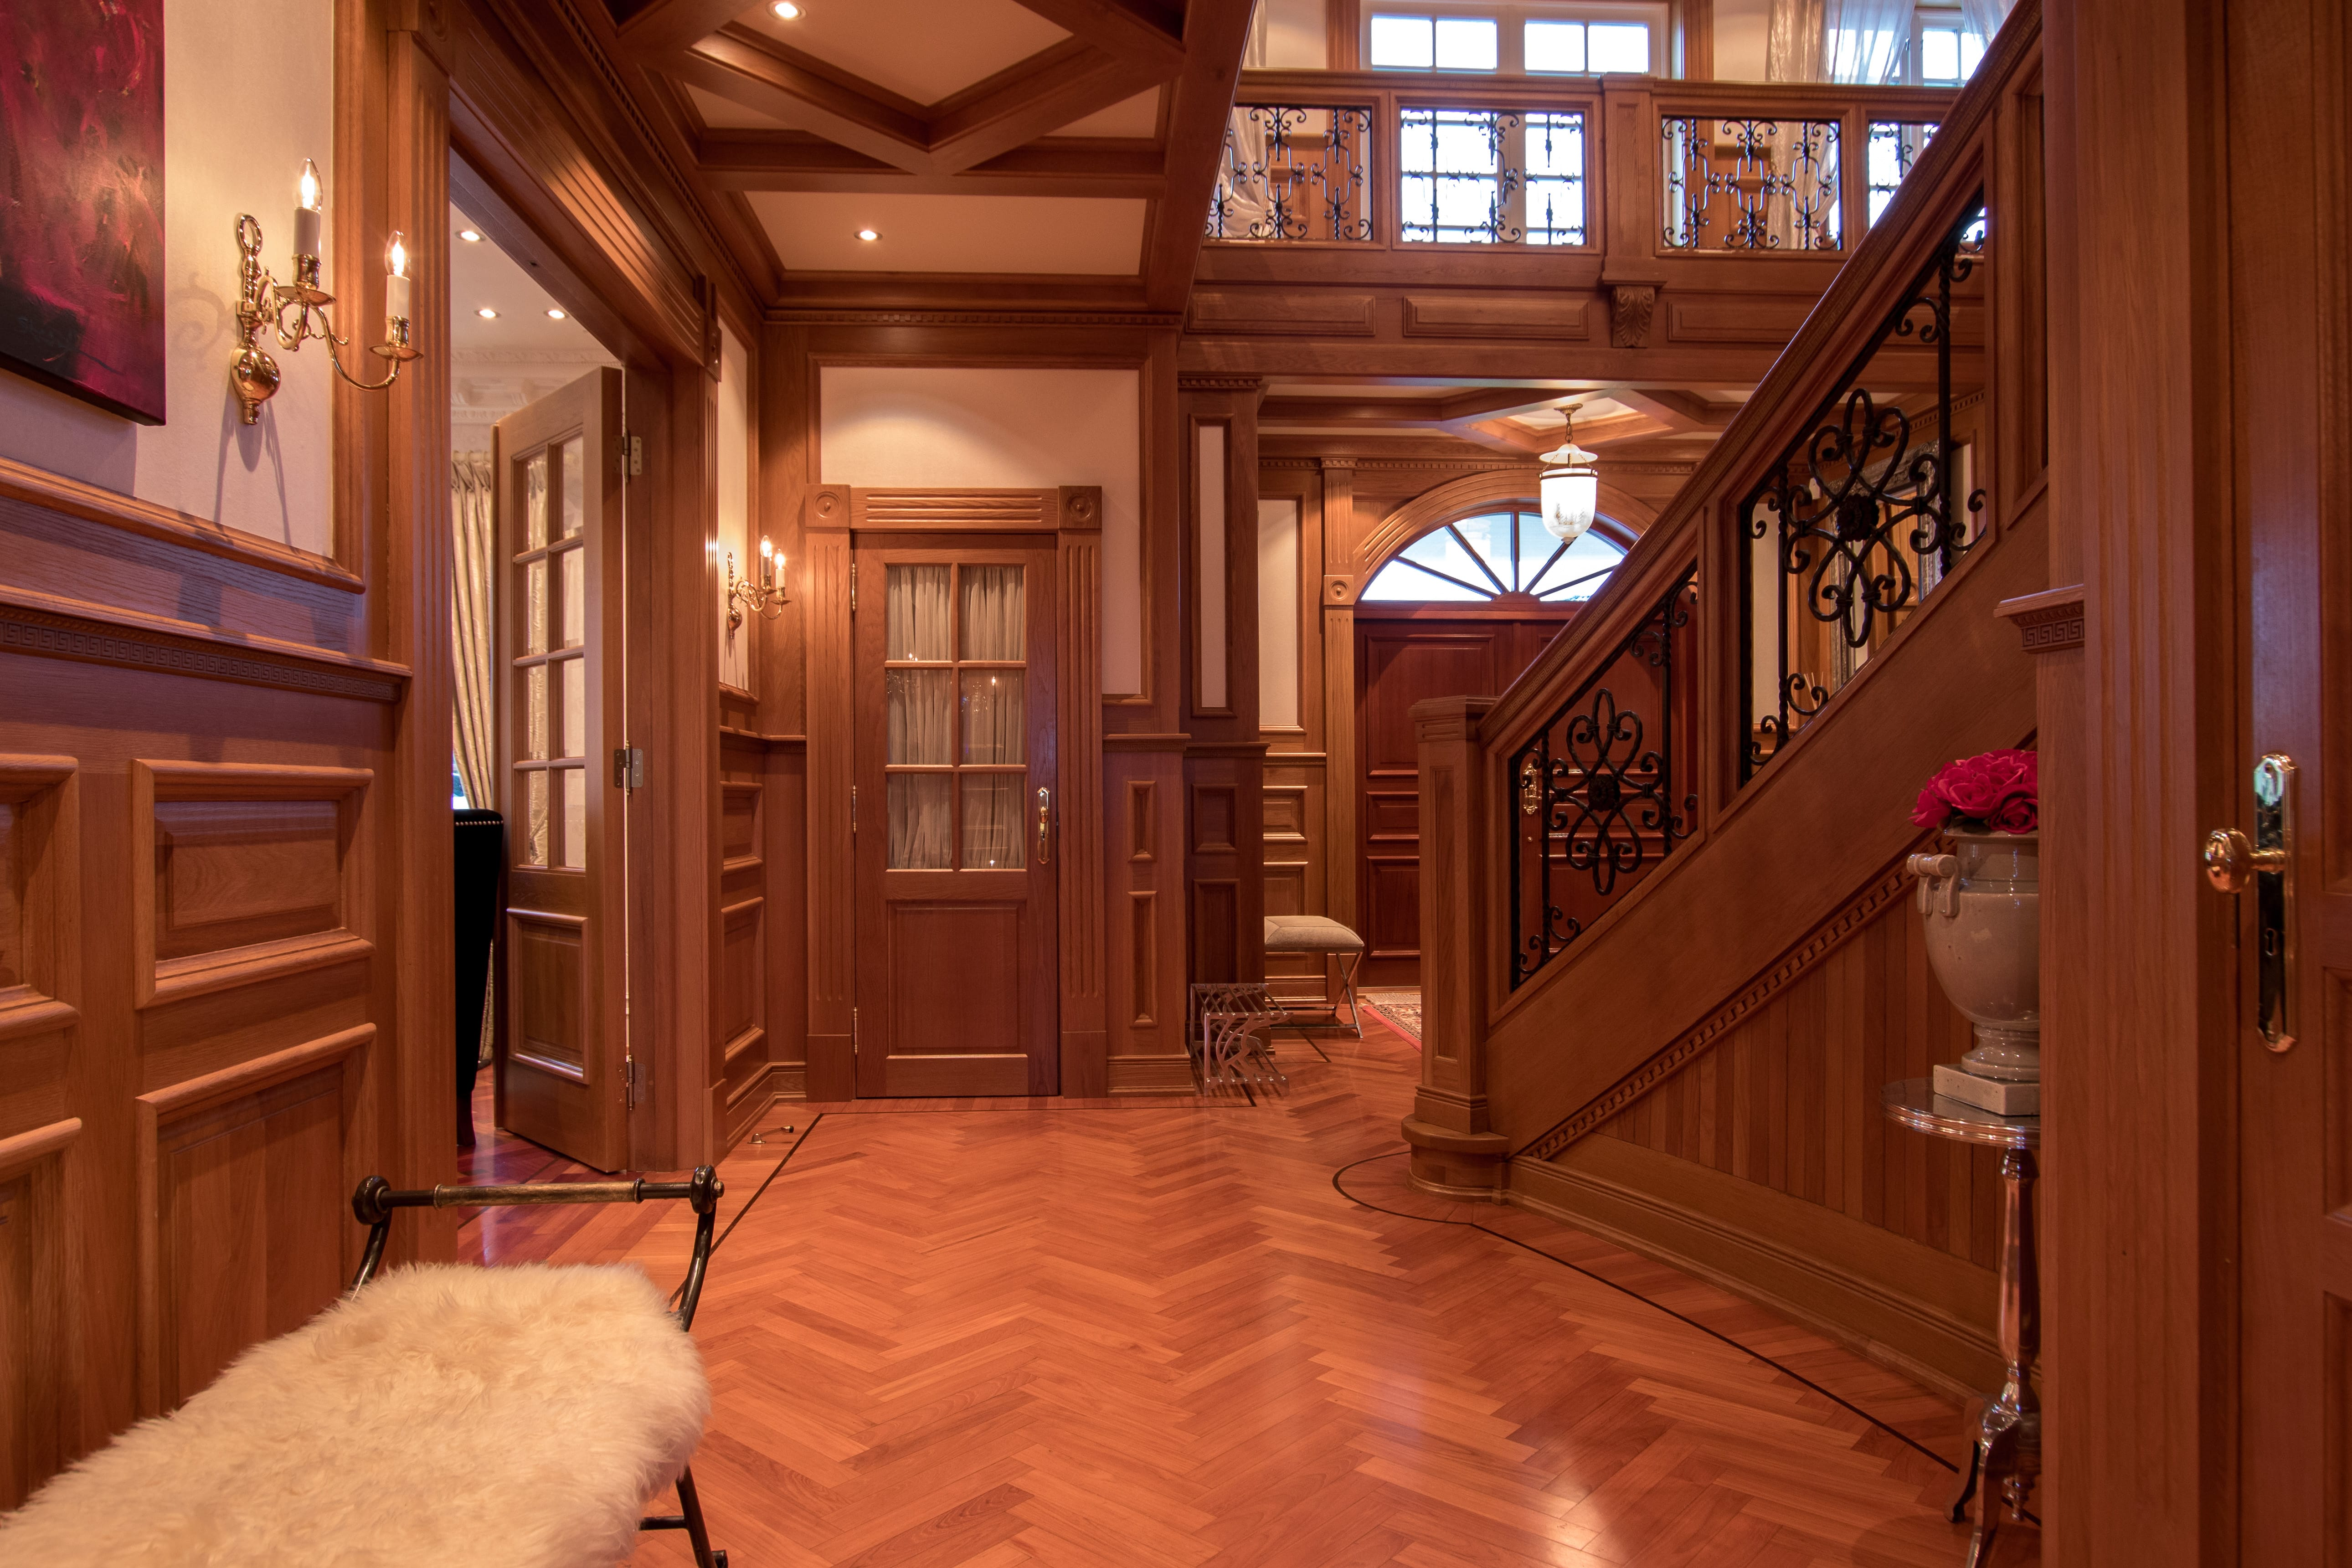 The main hall connects the rooms in style.